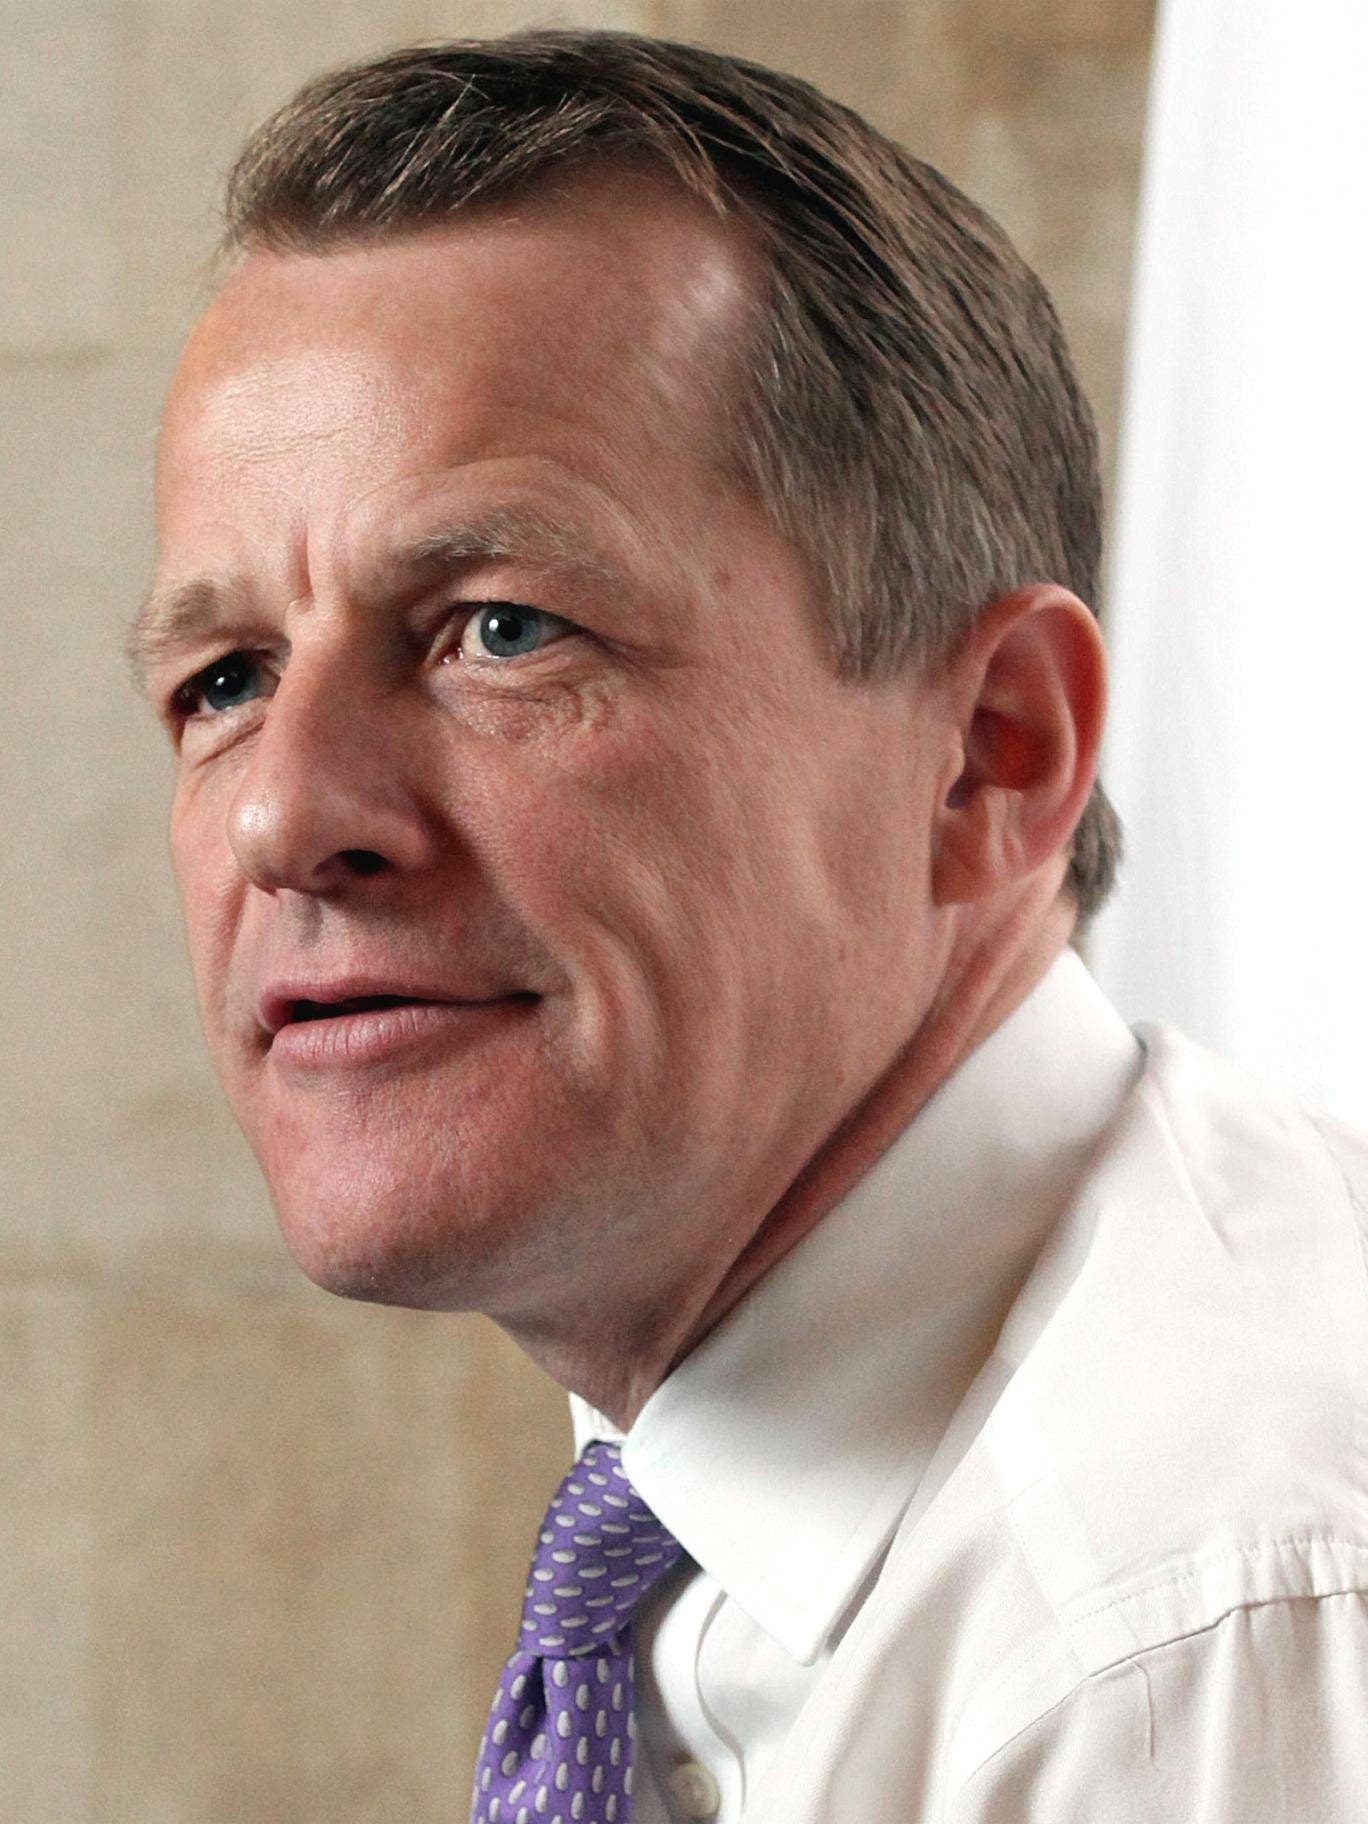 David Laws, Minister of State for Schools